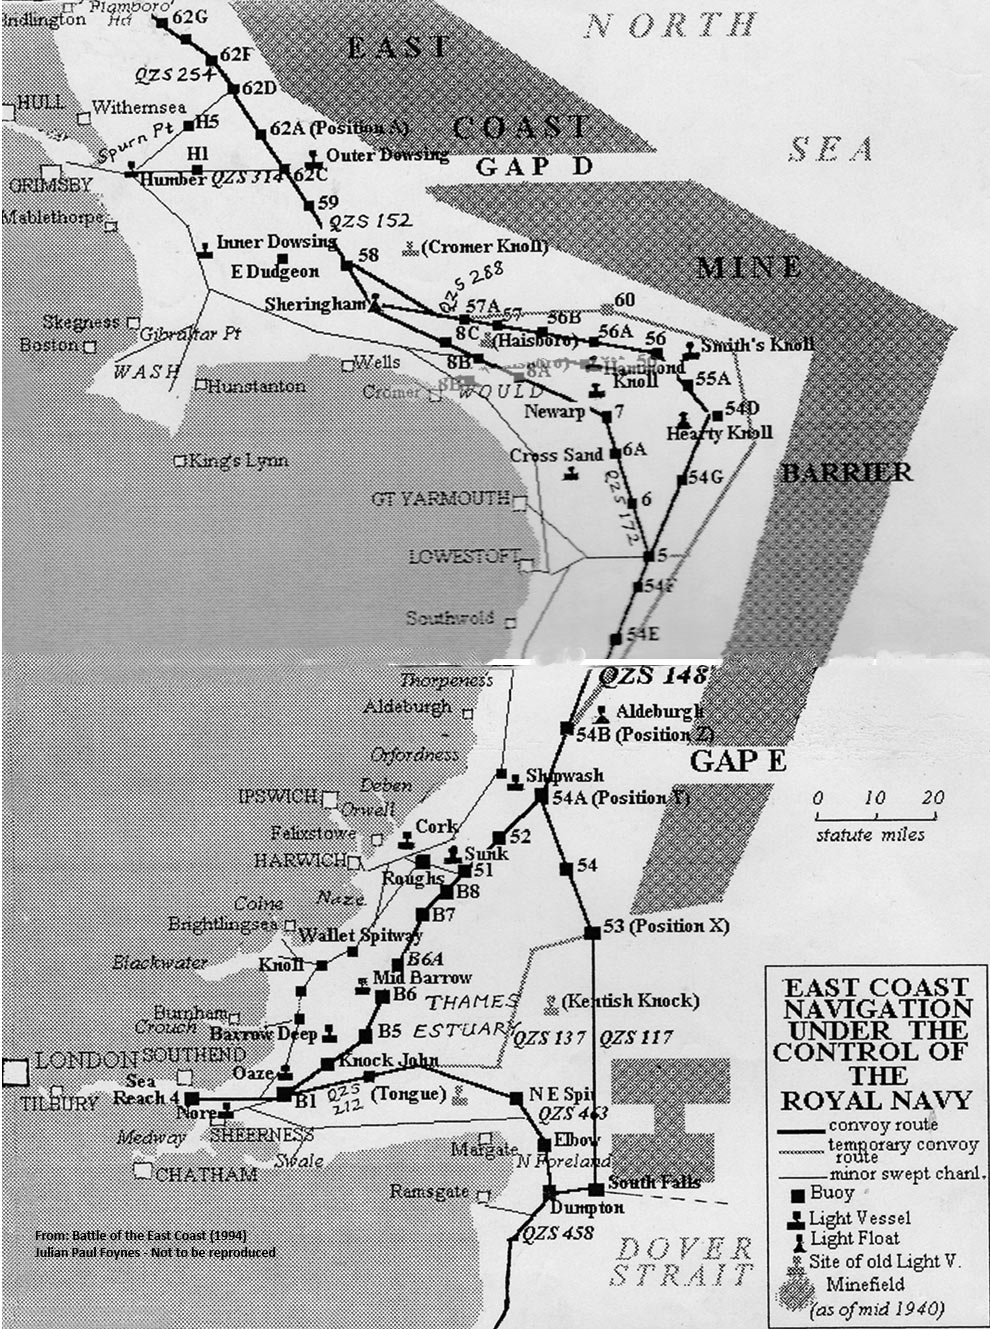 Map of East Coast showing Convoy royts in 1940